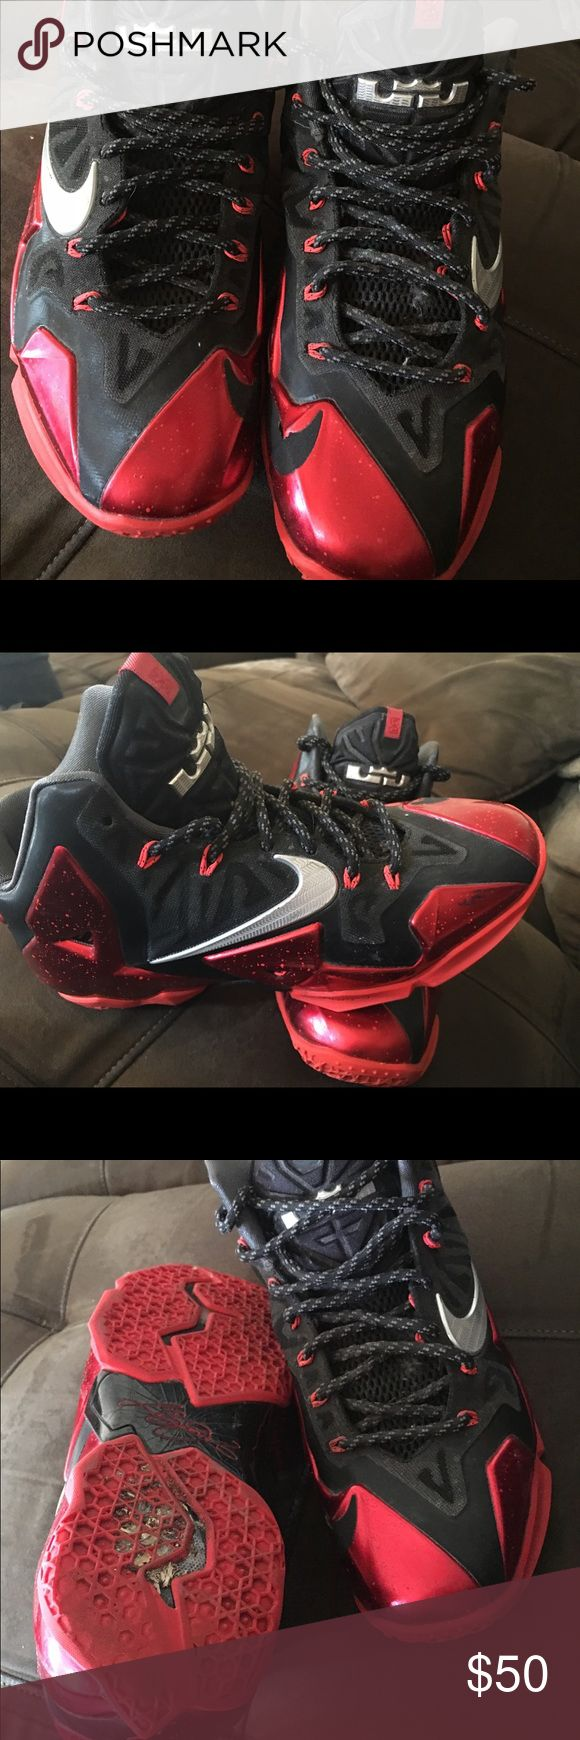 Lebron 11's Miami Heat Aways Lebron 11's. MIAMI HEAT AWAYS. Small scuff on front side. Nike Shoes Sneakers